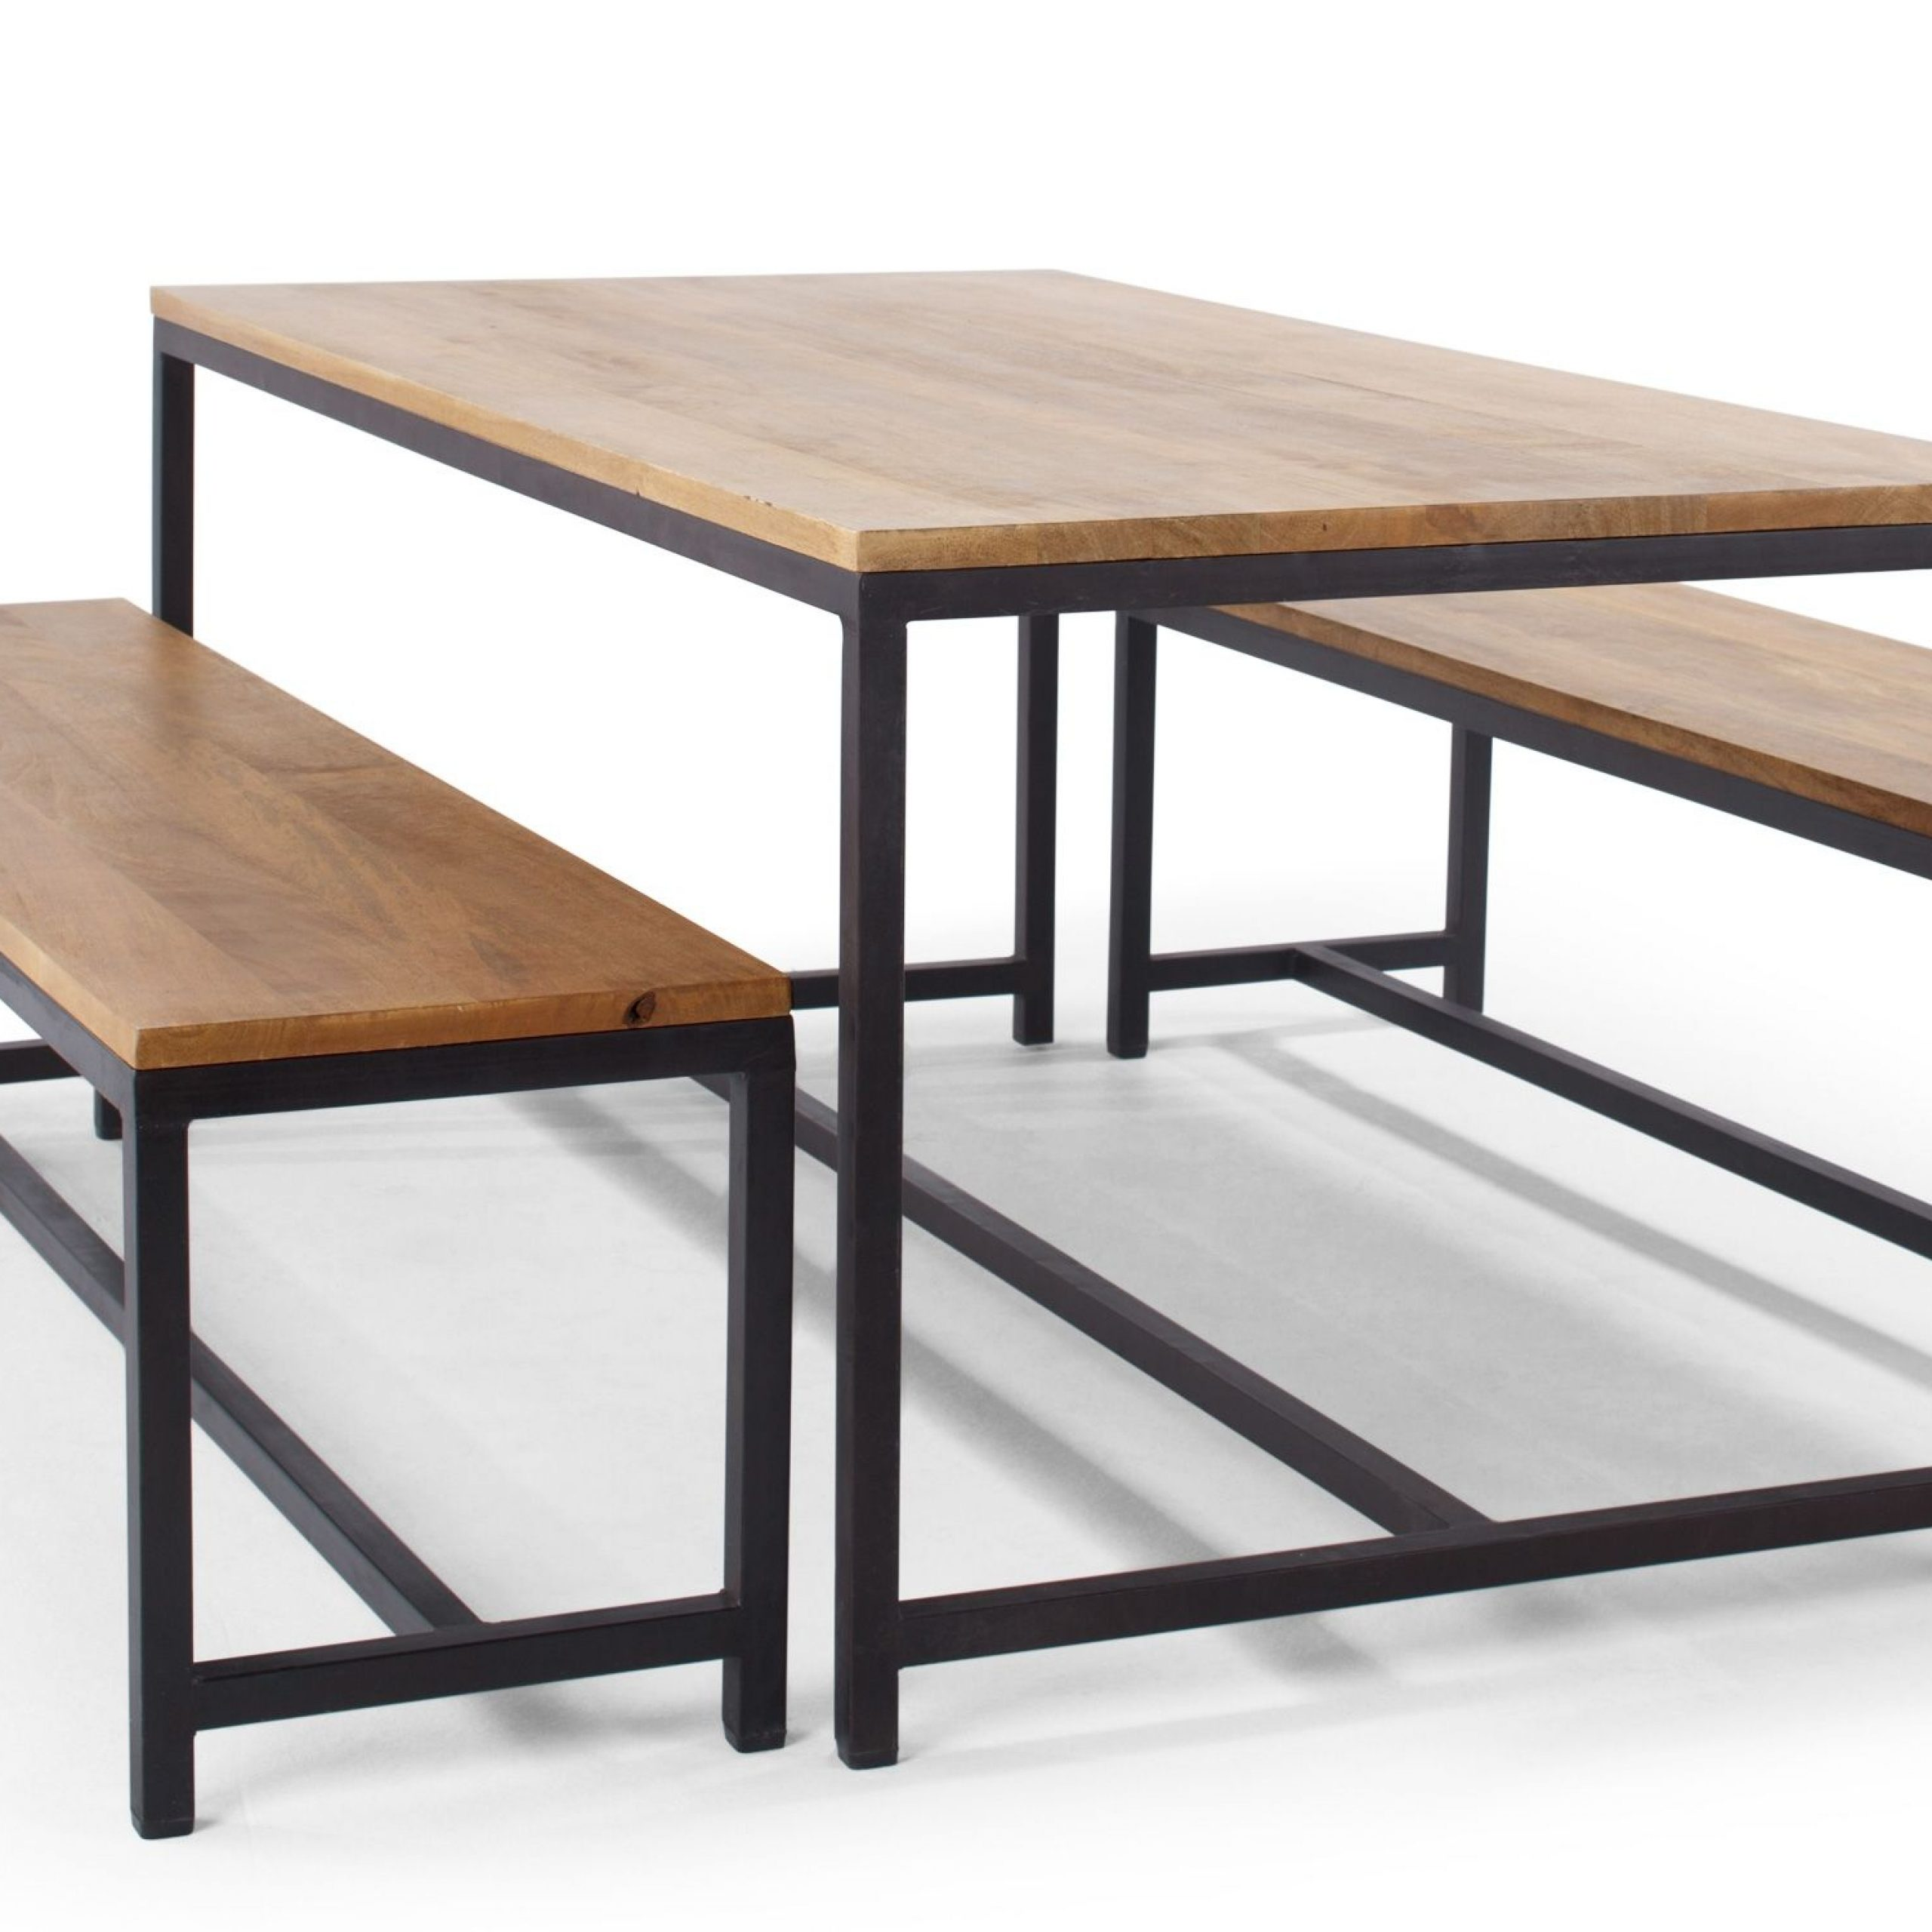 Lomond Dining Set, Natural Mango Wood And Black Metal For Most Recent Iron Dining Tables With Mango Wood (View 13 of 25)